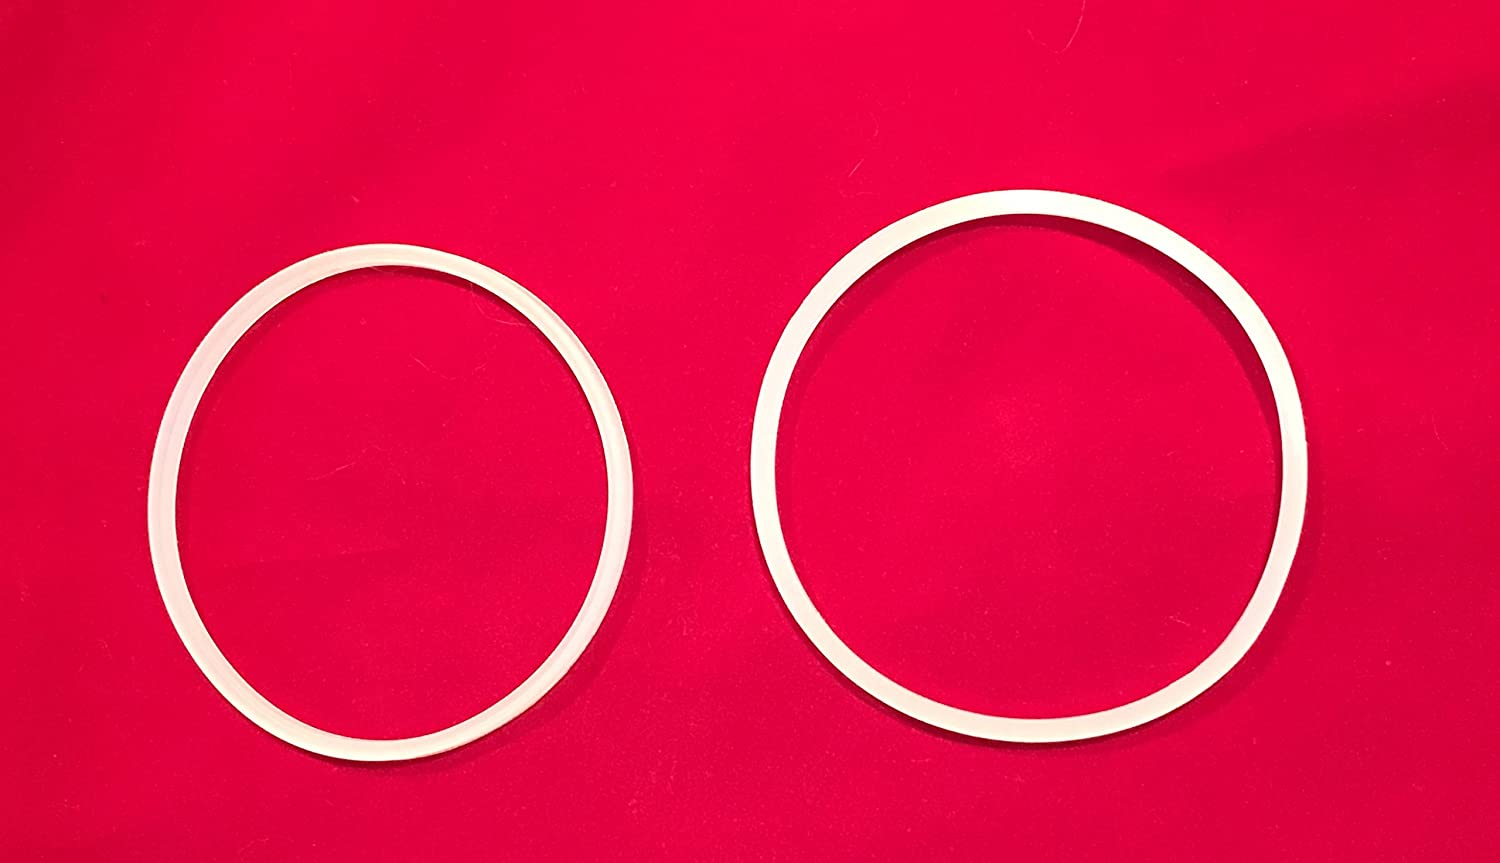 BELLA Personal Size Rocket Blender replacement parts (Two gaskets)